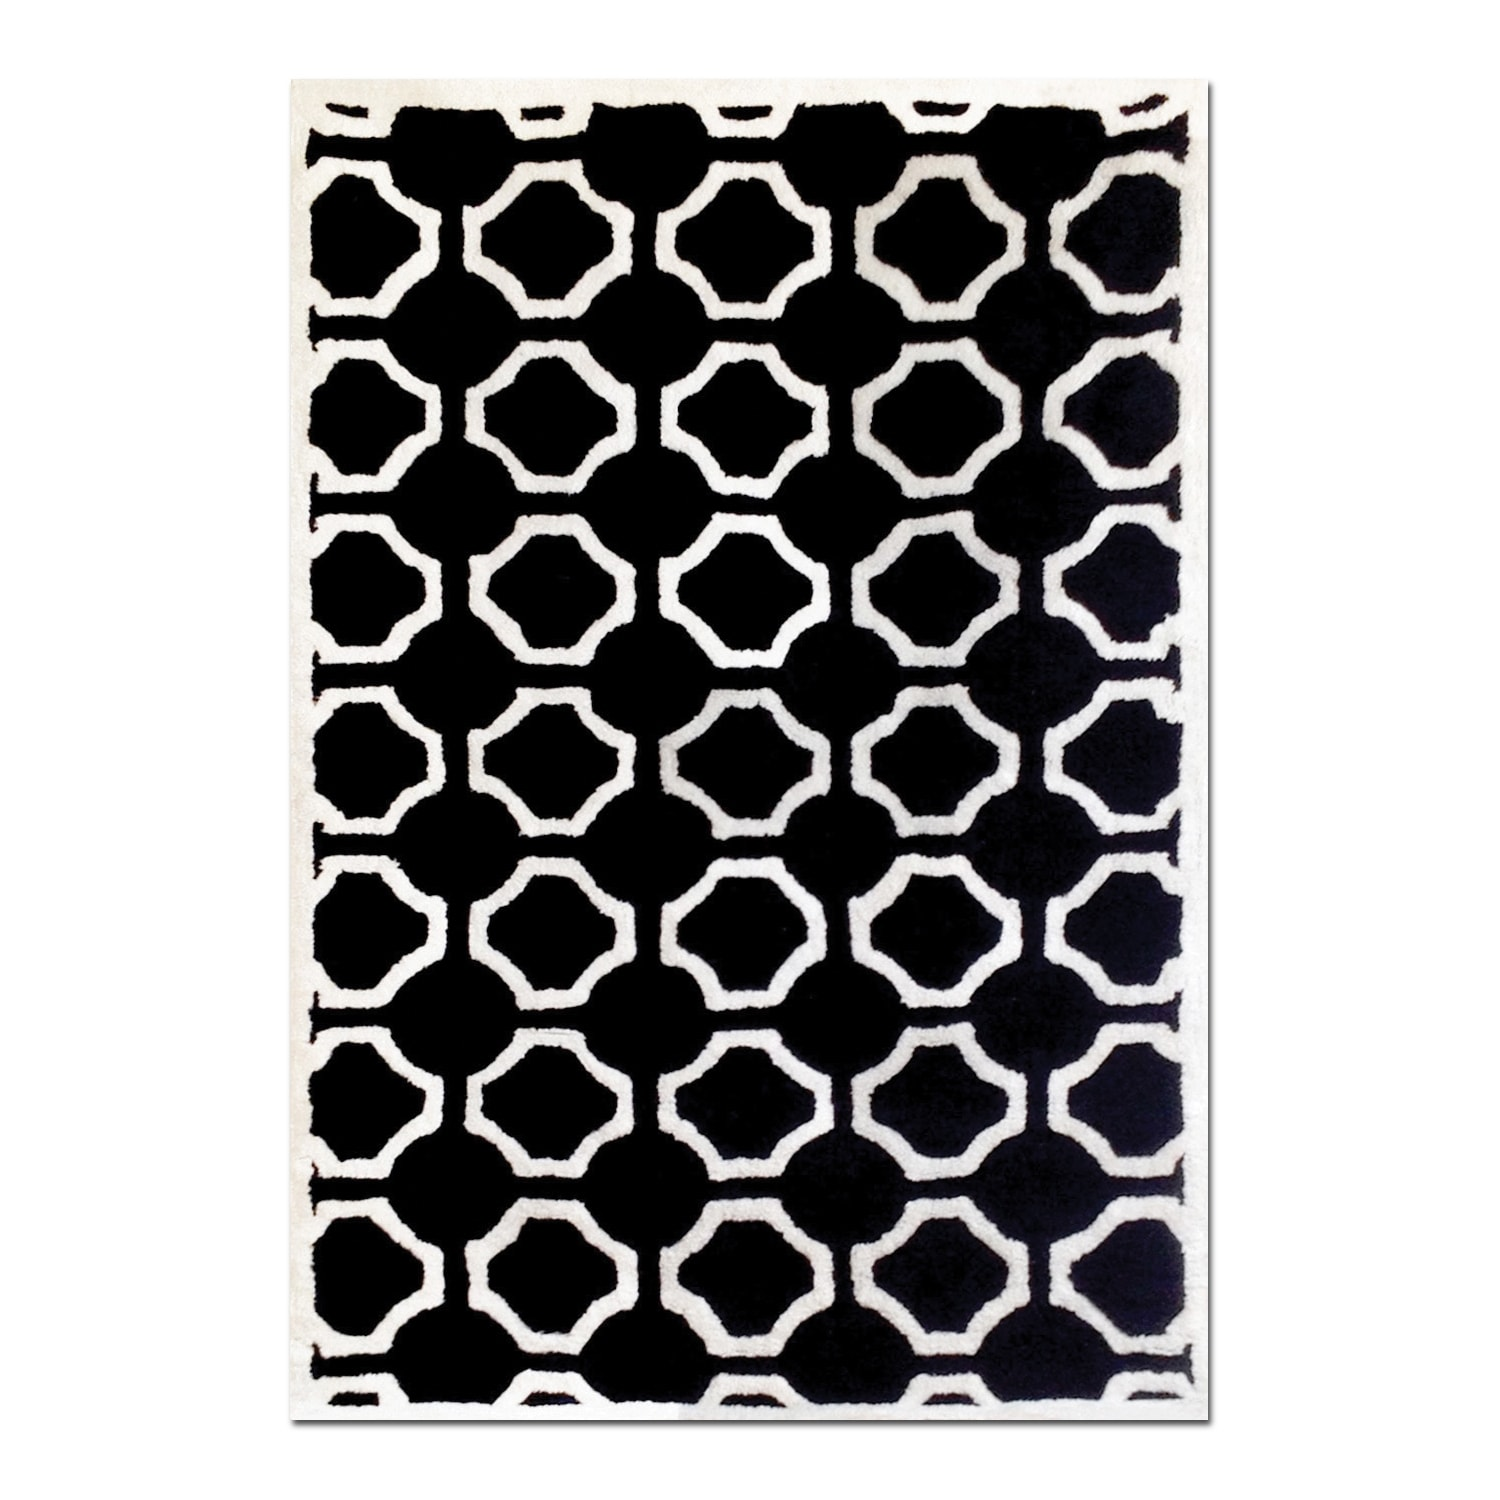 Rugs - Lifestyle Black Semi-Circle Area Rug (8' x 10')